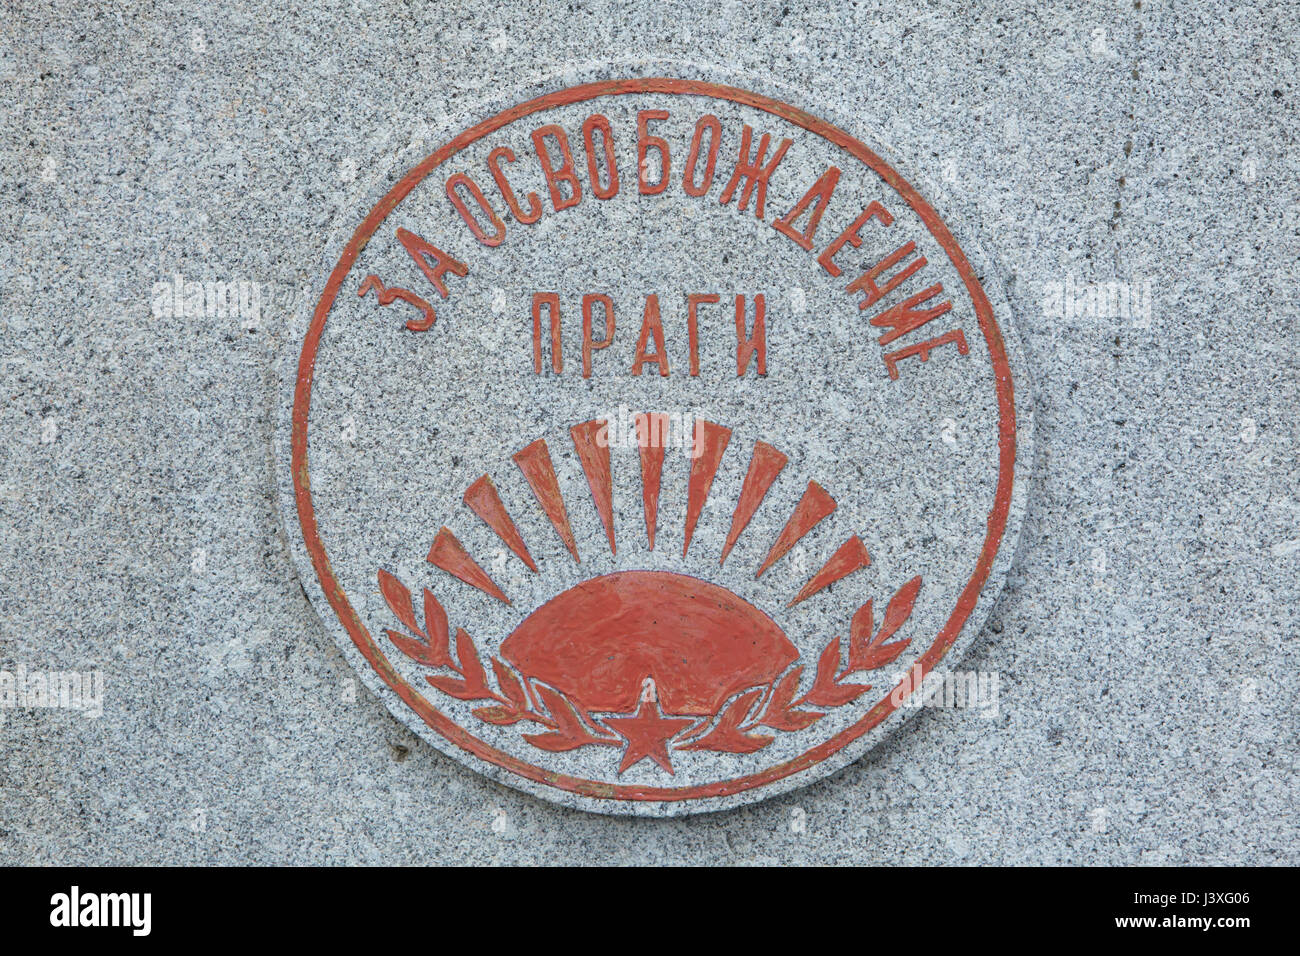 Soviet medal 'For the Liberation of Prague' depicted on the Soviet War Memorial at the Central Cemetery - Stock Image